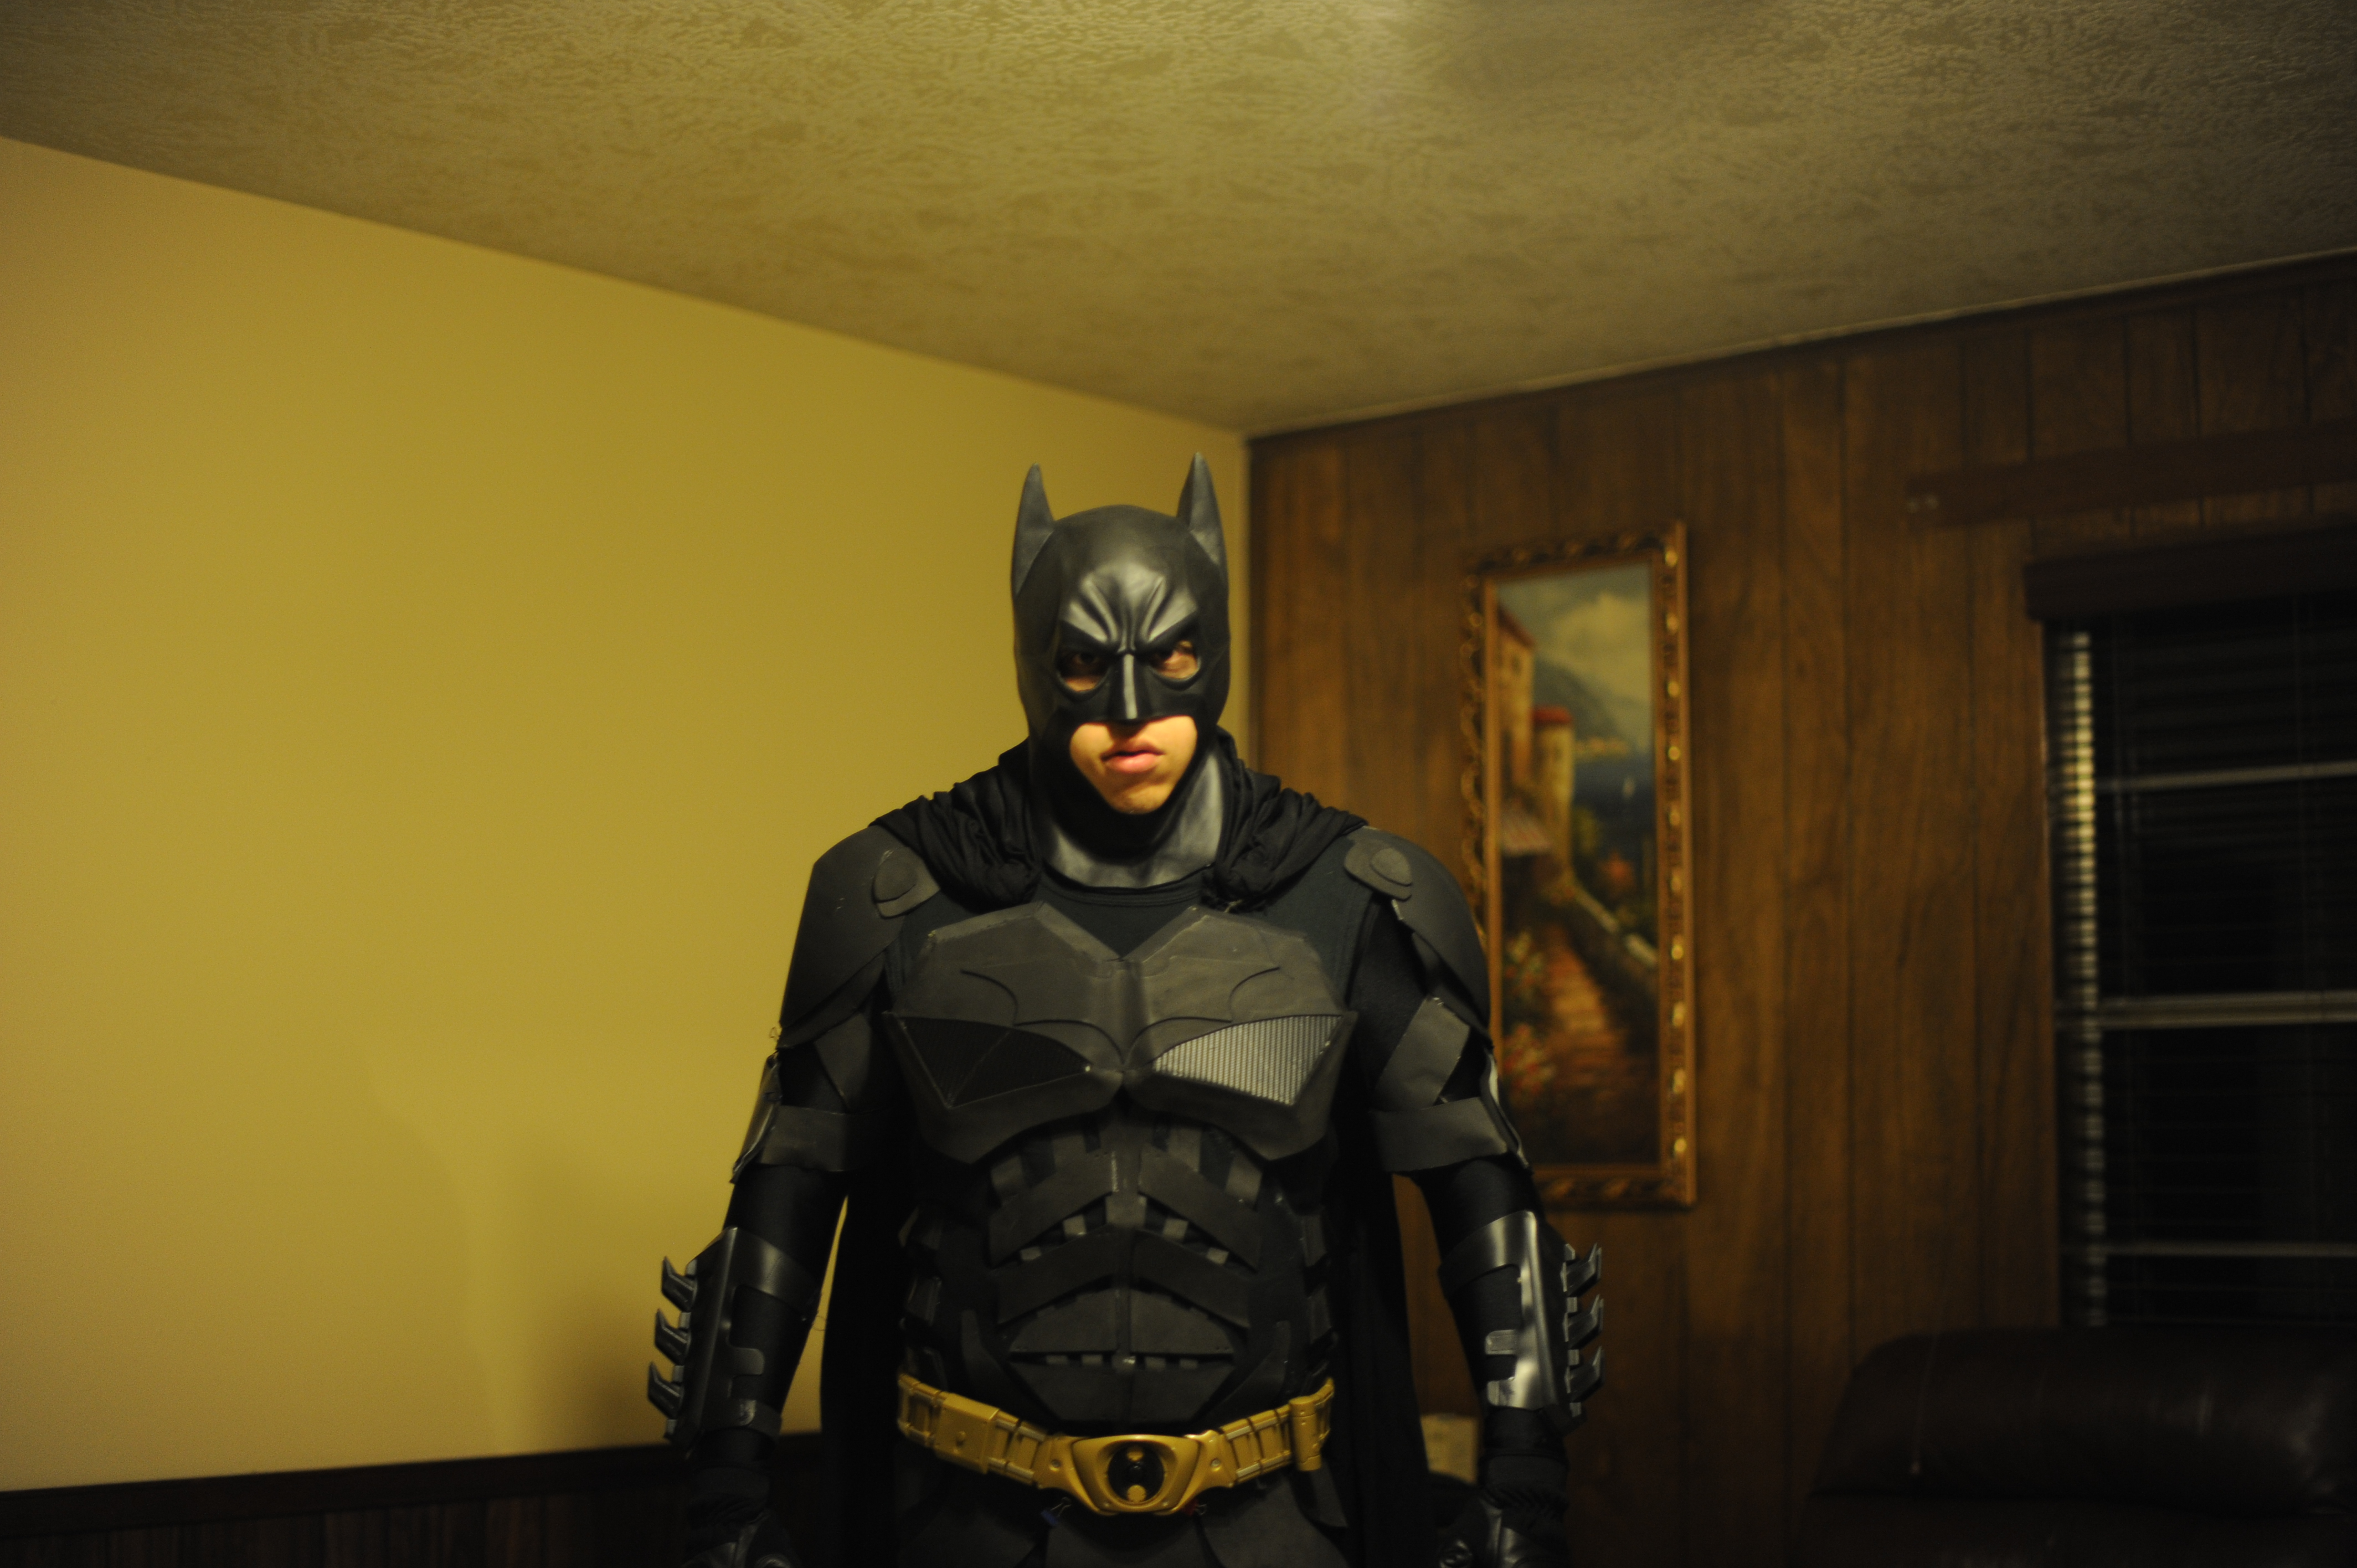 The Dark Knight Rises Batman Costume